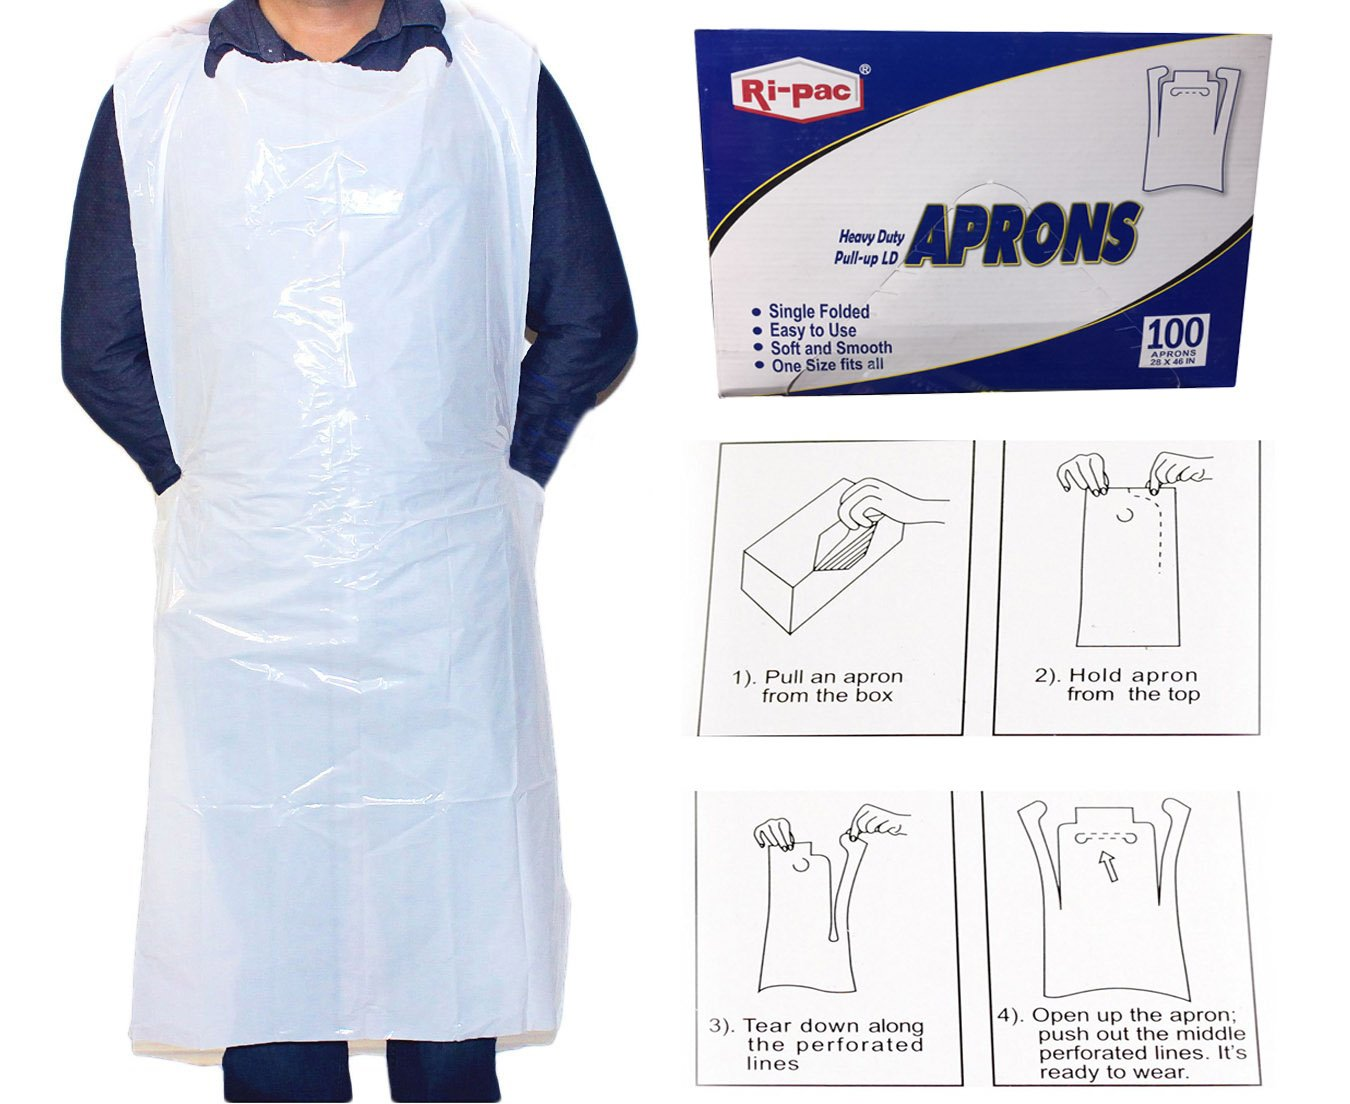 Box of 100 Disposable Poly Aprons, 28 Inch X 46 Inch